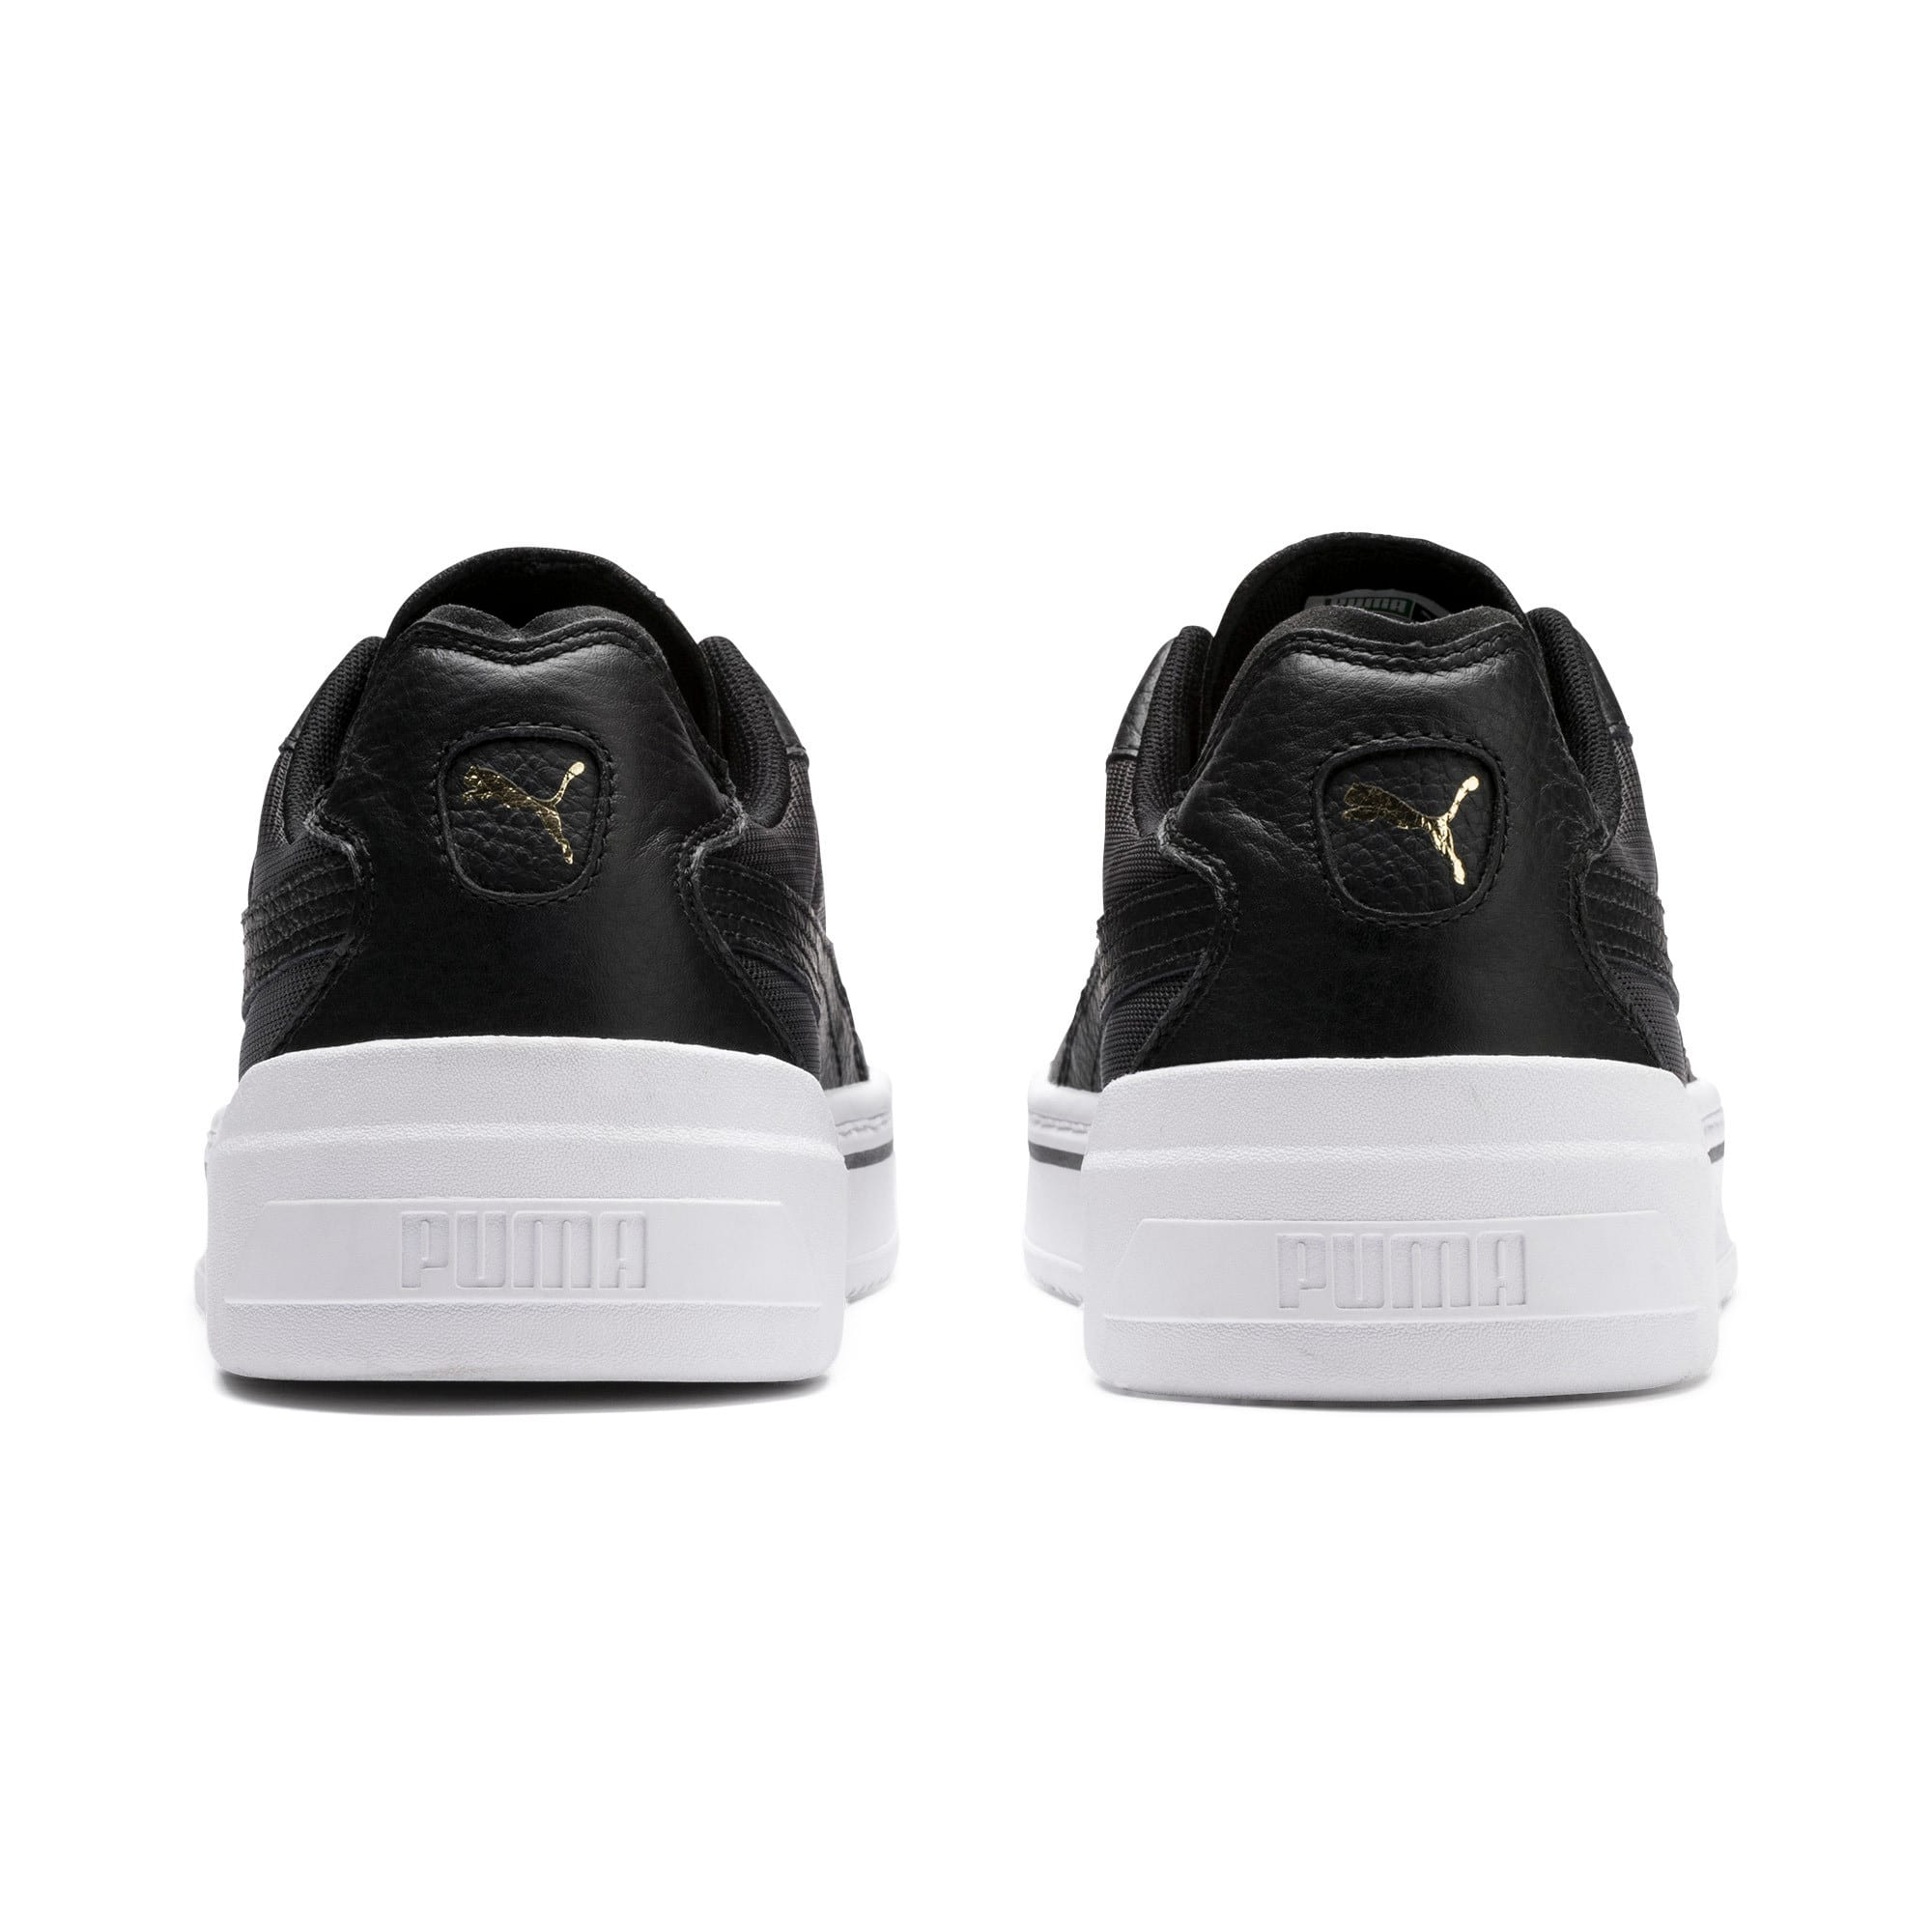 Thumbnail 4 of Cali-0 Sneakers, Puma Black-Puma Blk-Puma Wht, medium